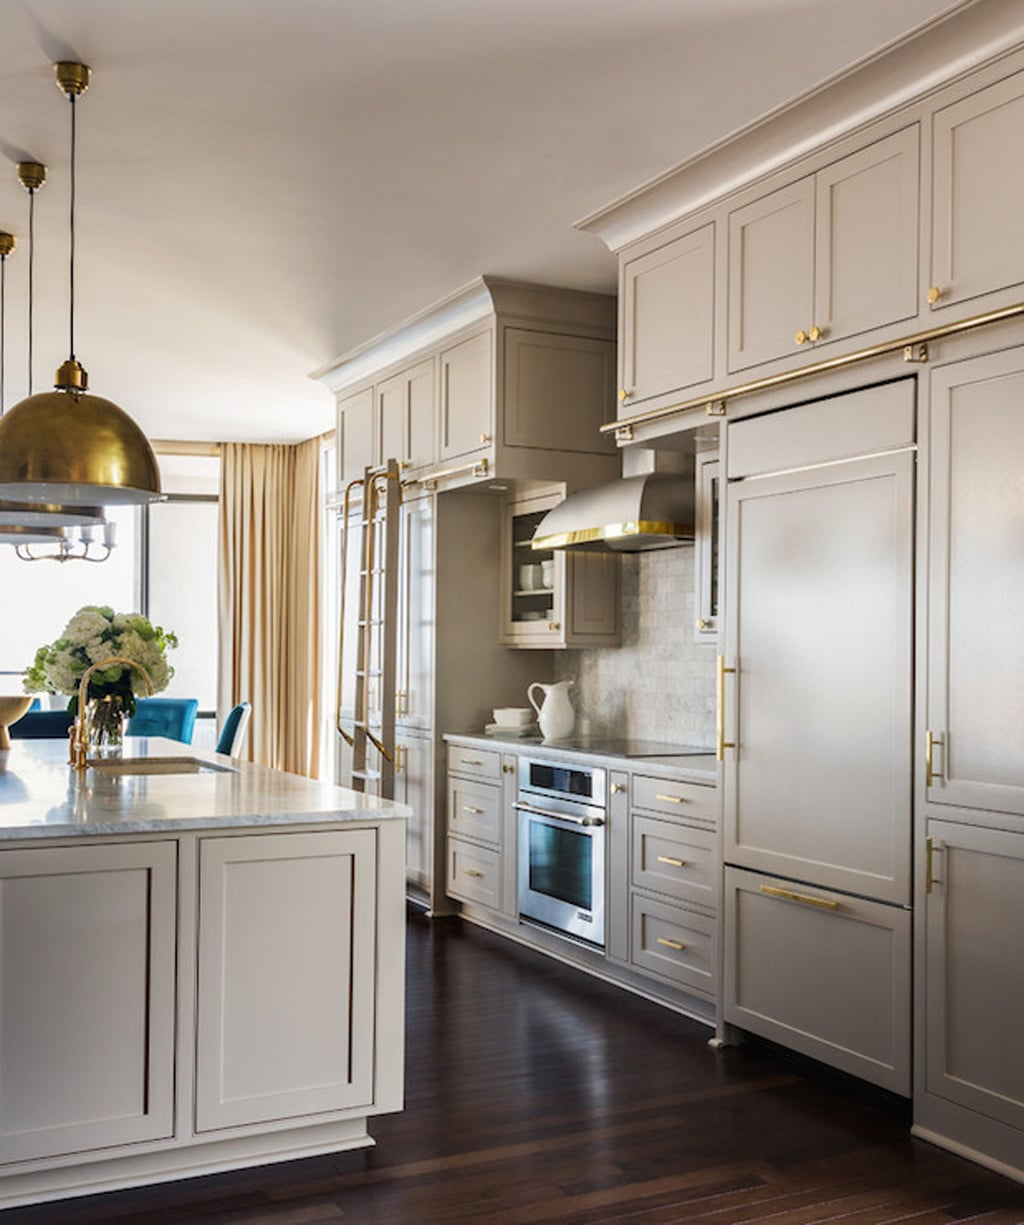 Anew Gray kitchen cabinets by Tobi Fairley - Color Wheel Update: Anew Gray